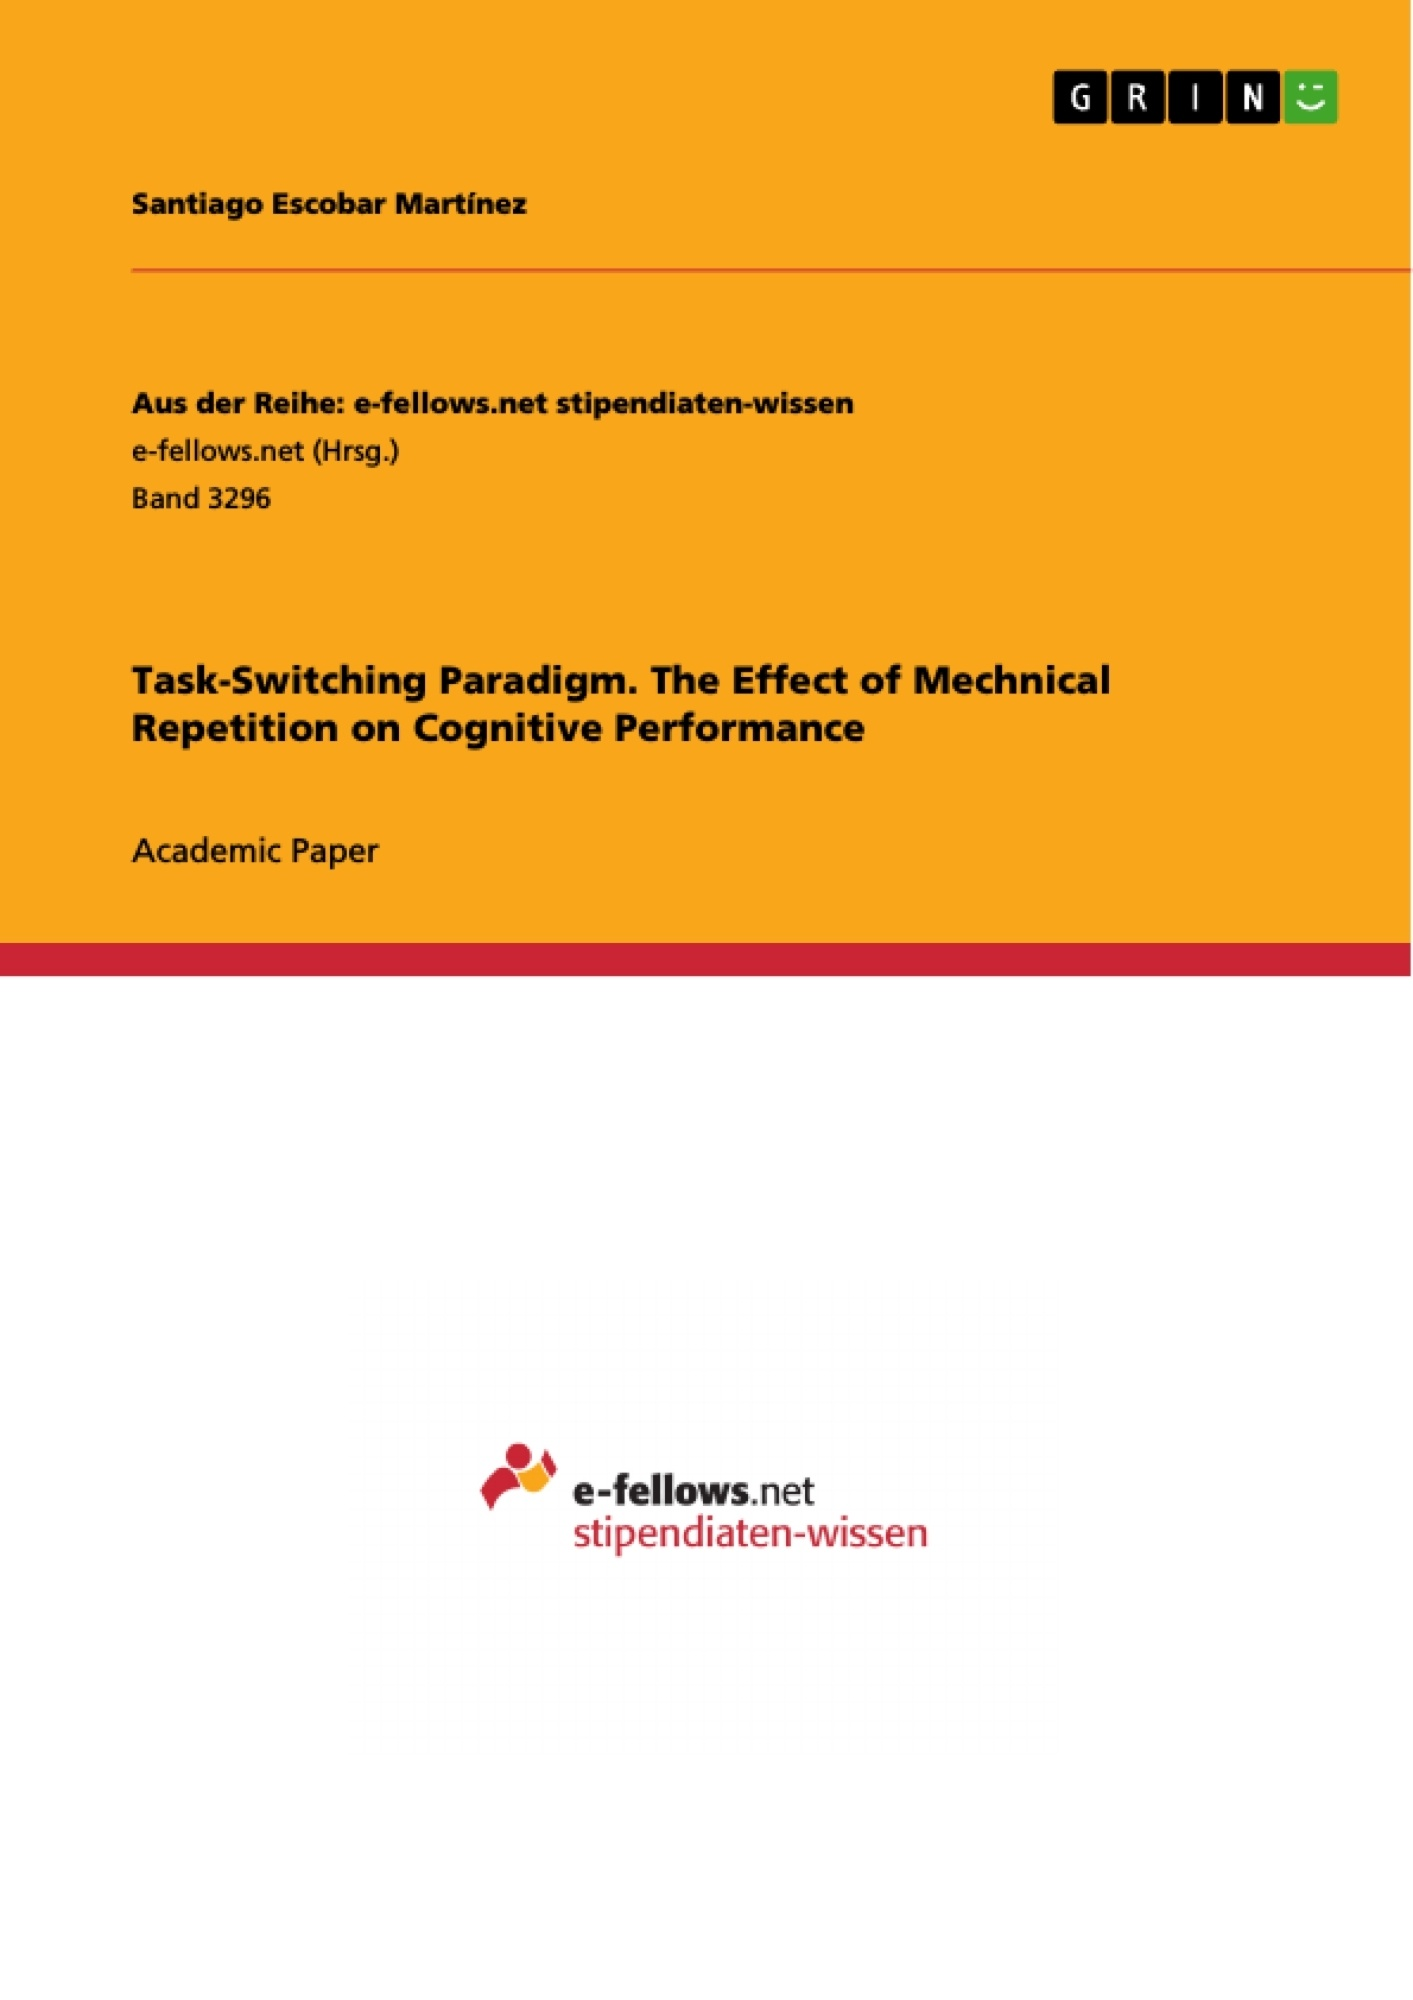 Title: Task-Switching Paradigm. The Effect of Mechnical Repetition on Cognitive Performance